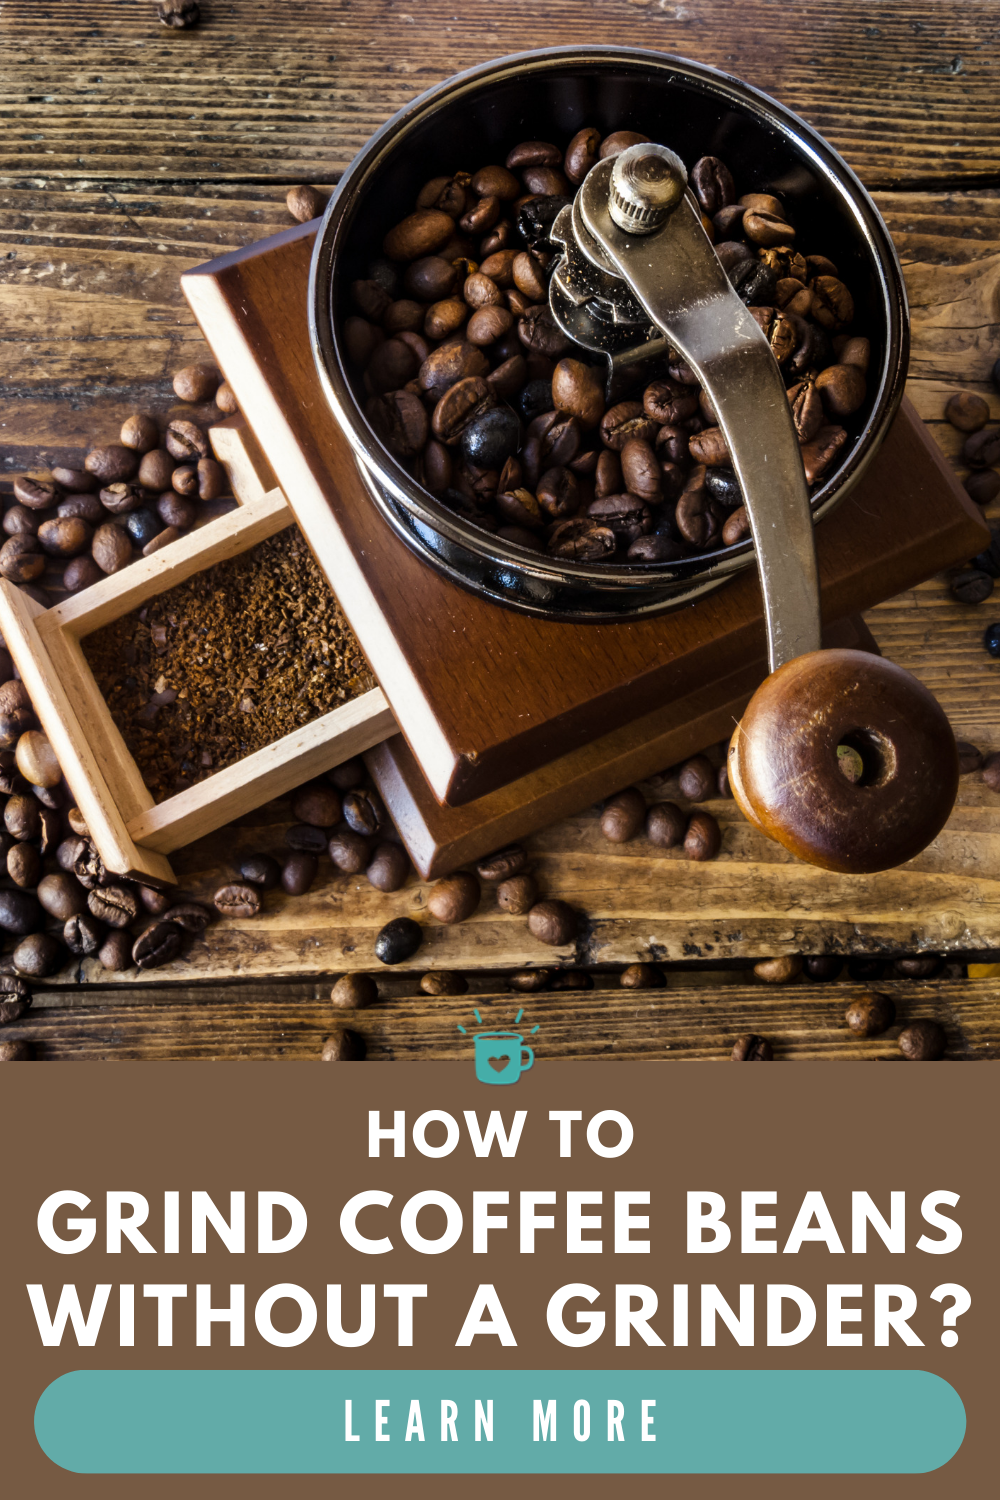 6 Simple Ways To Grind Coffee Without A Grinder In 2020 Coffee Recipe Healthy Coffee Flavor Coffee Hacks